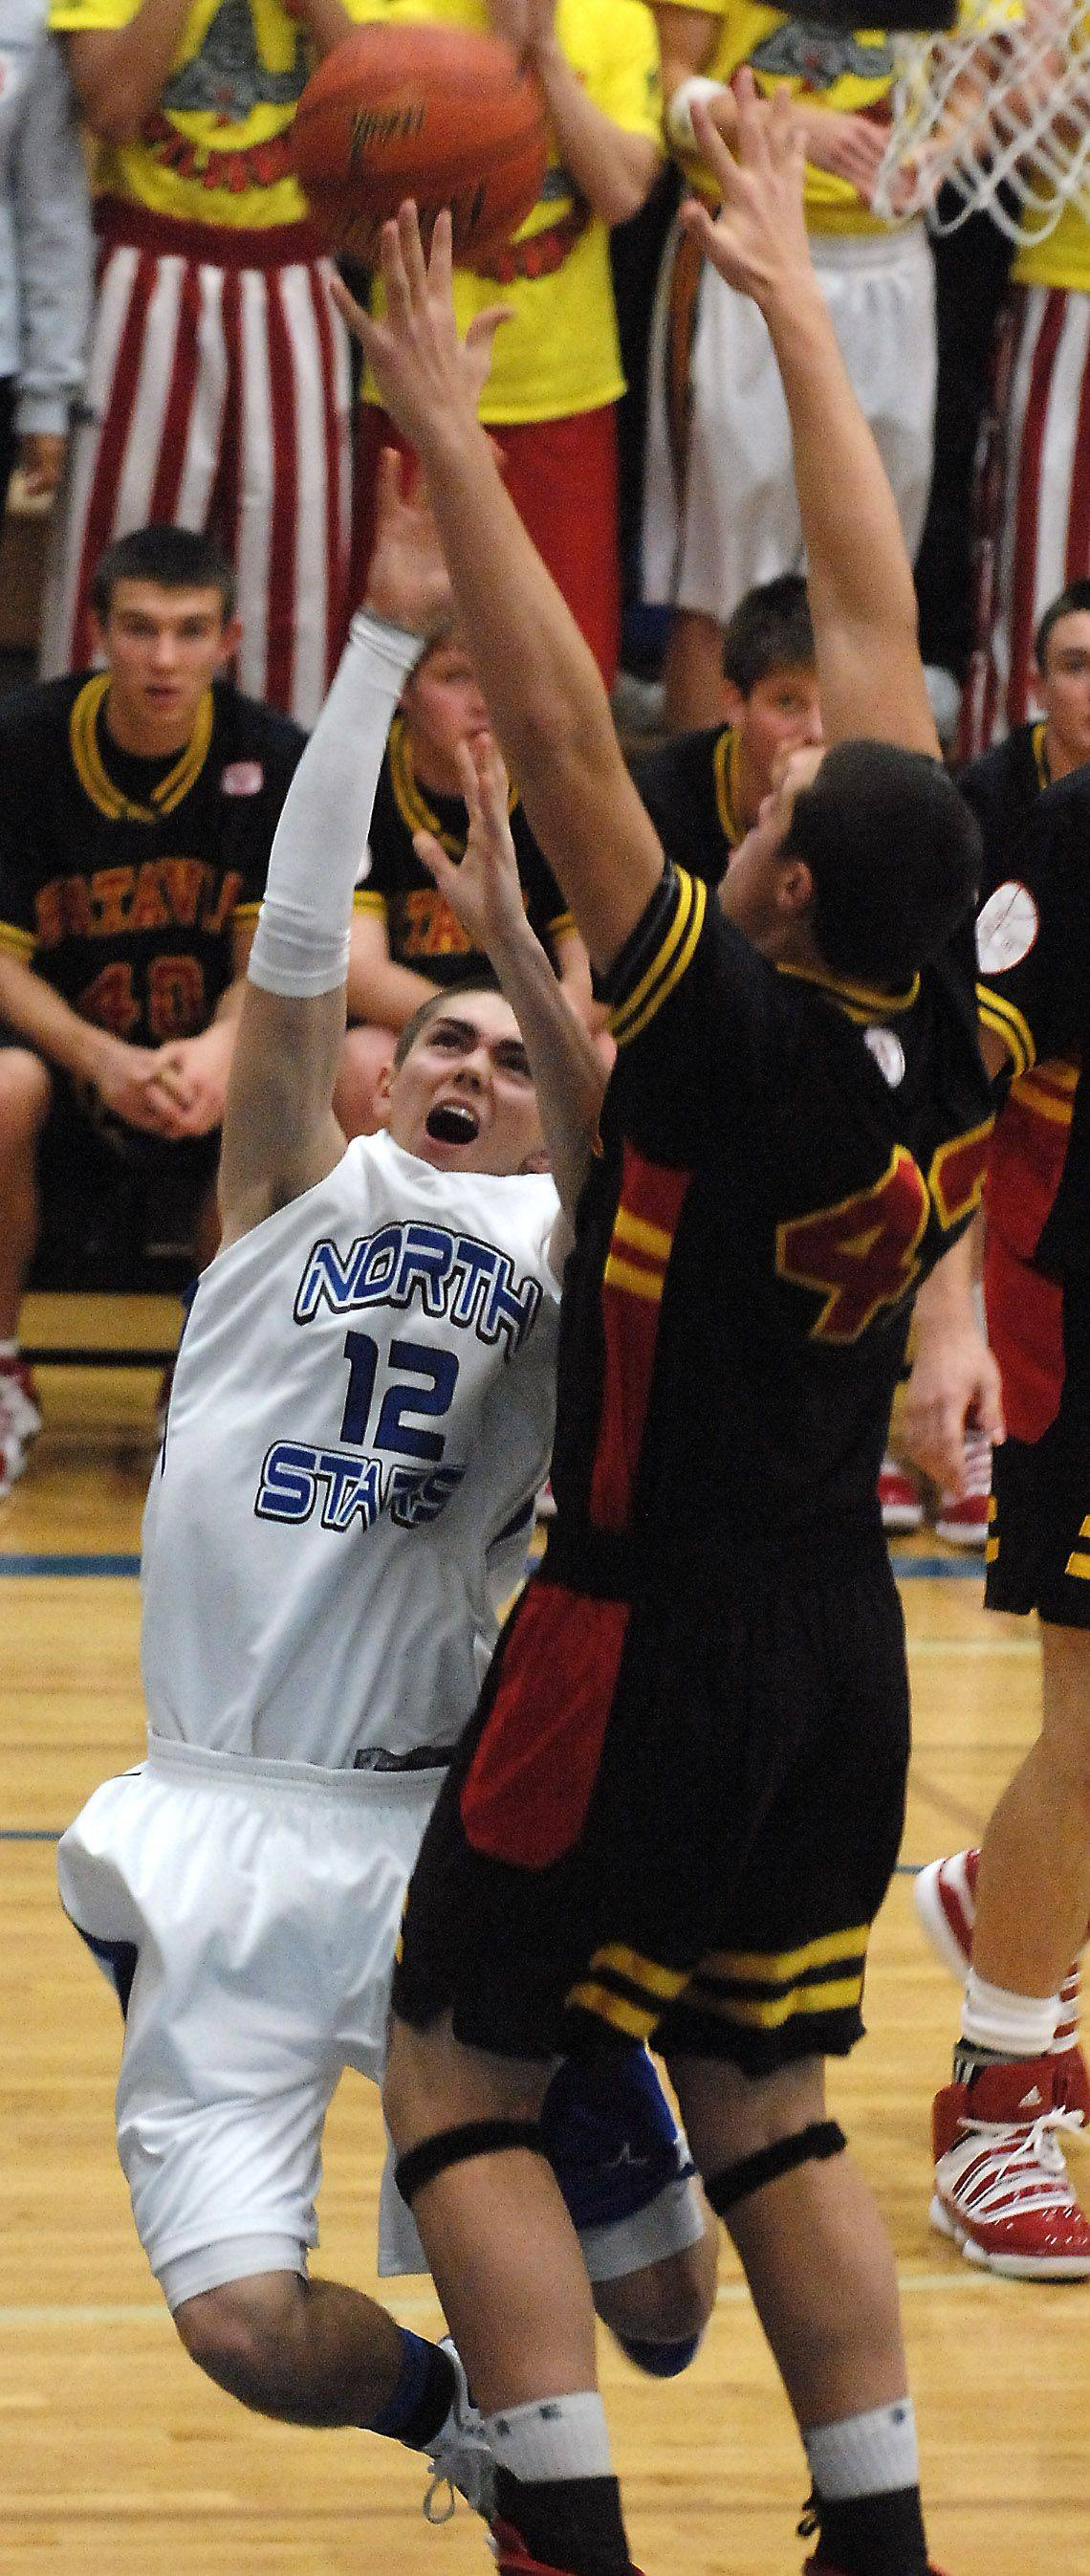 St. Charles North's Quinten Payne scores and is fouled by Batavia's Cole Gardner.